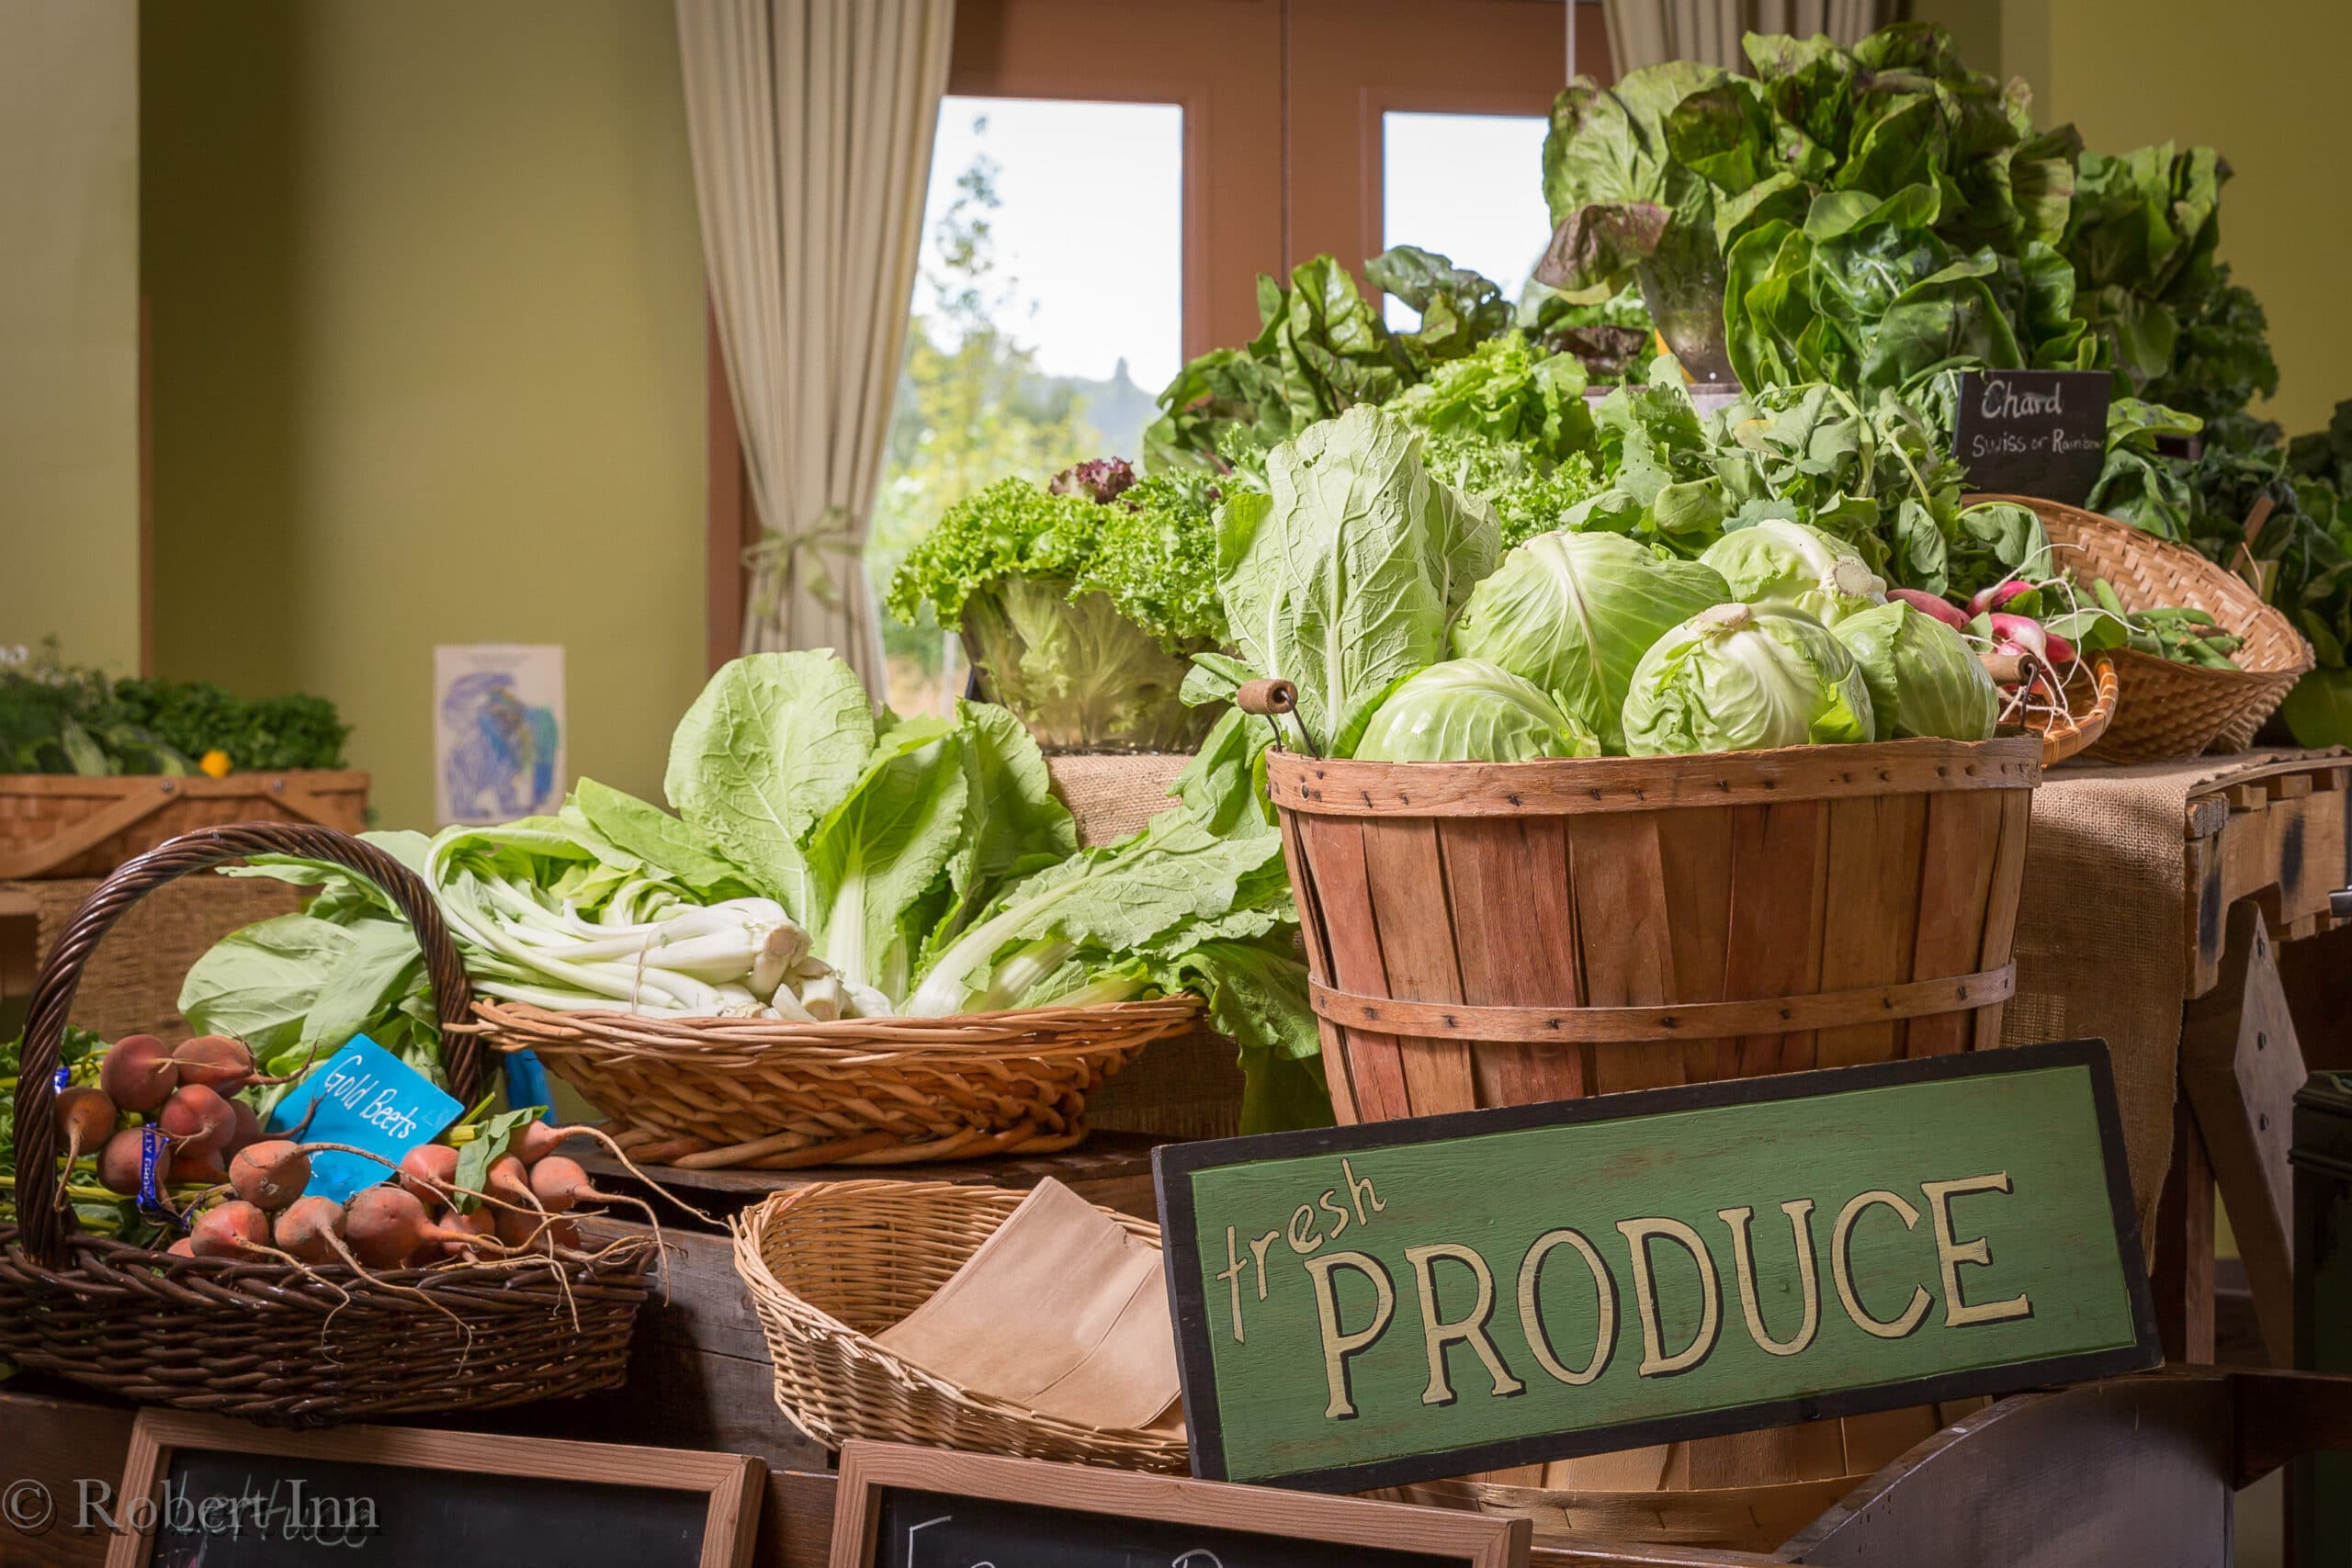 Thanks to Robert Inn Photography for this gorgeous photo of the produce in our Farm Market, including some lovely green cabbages.